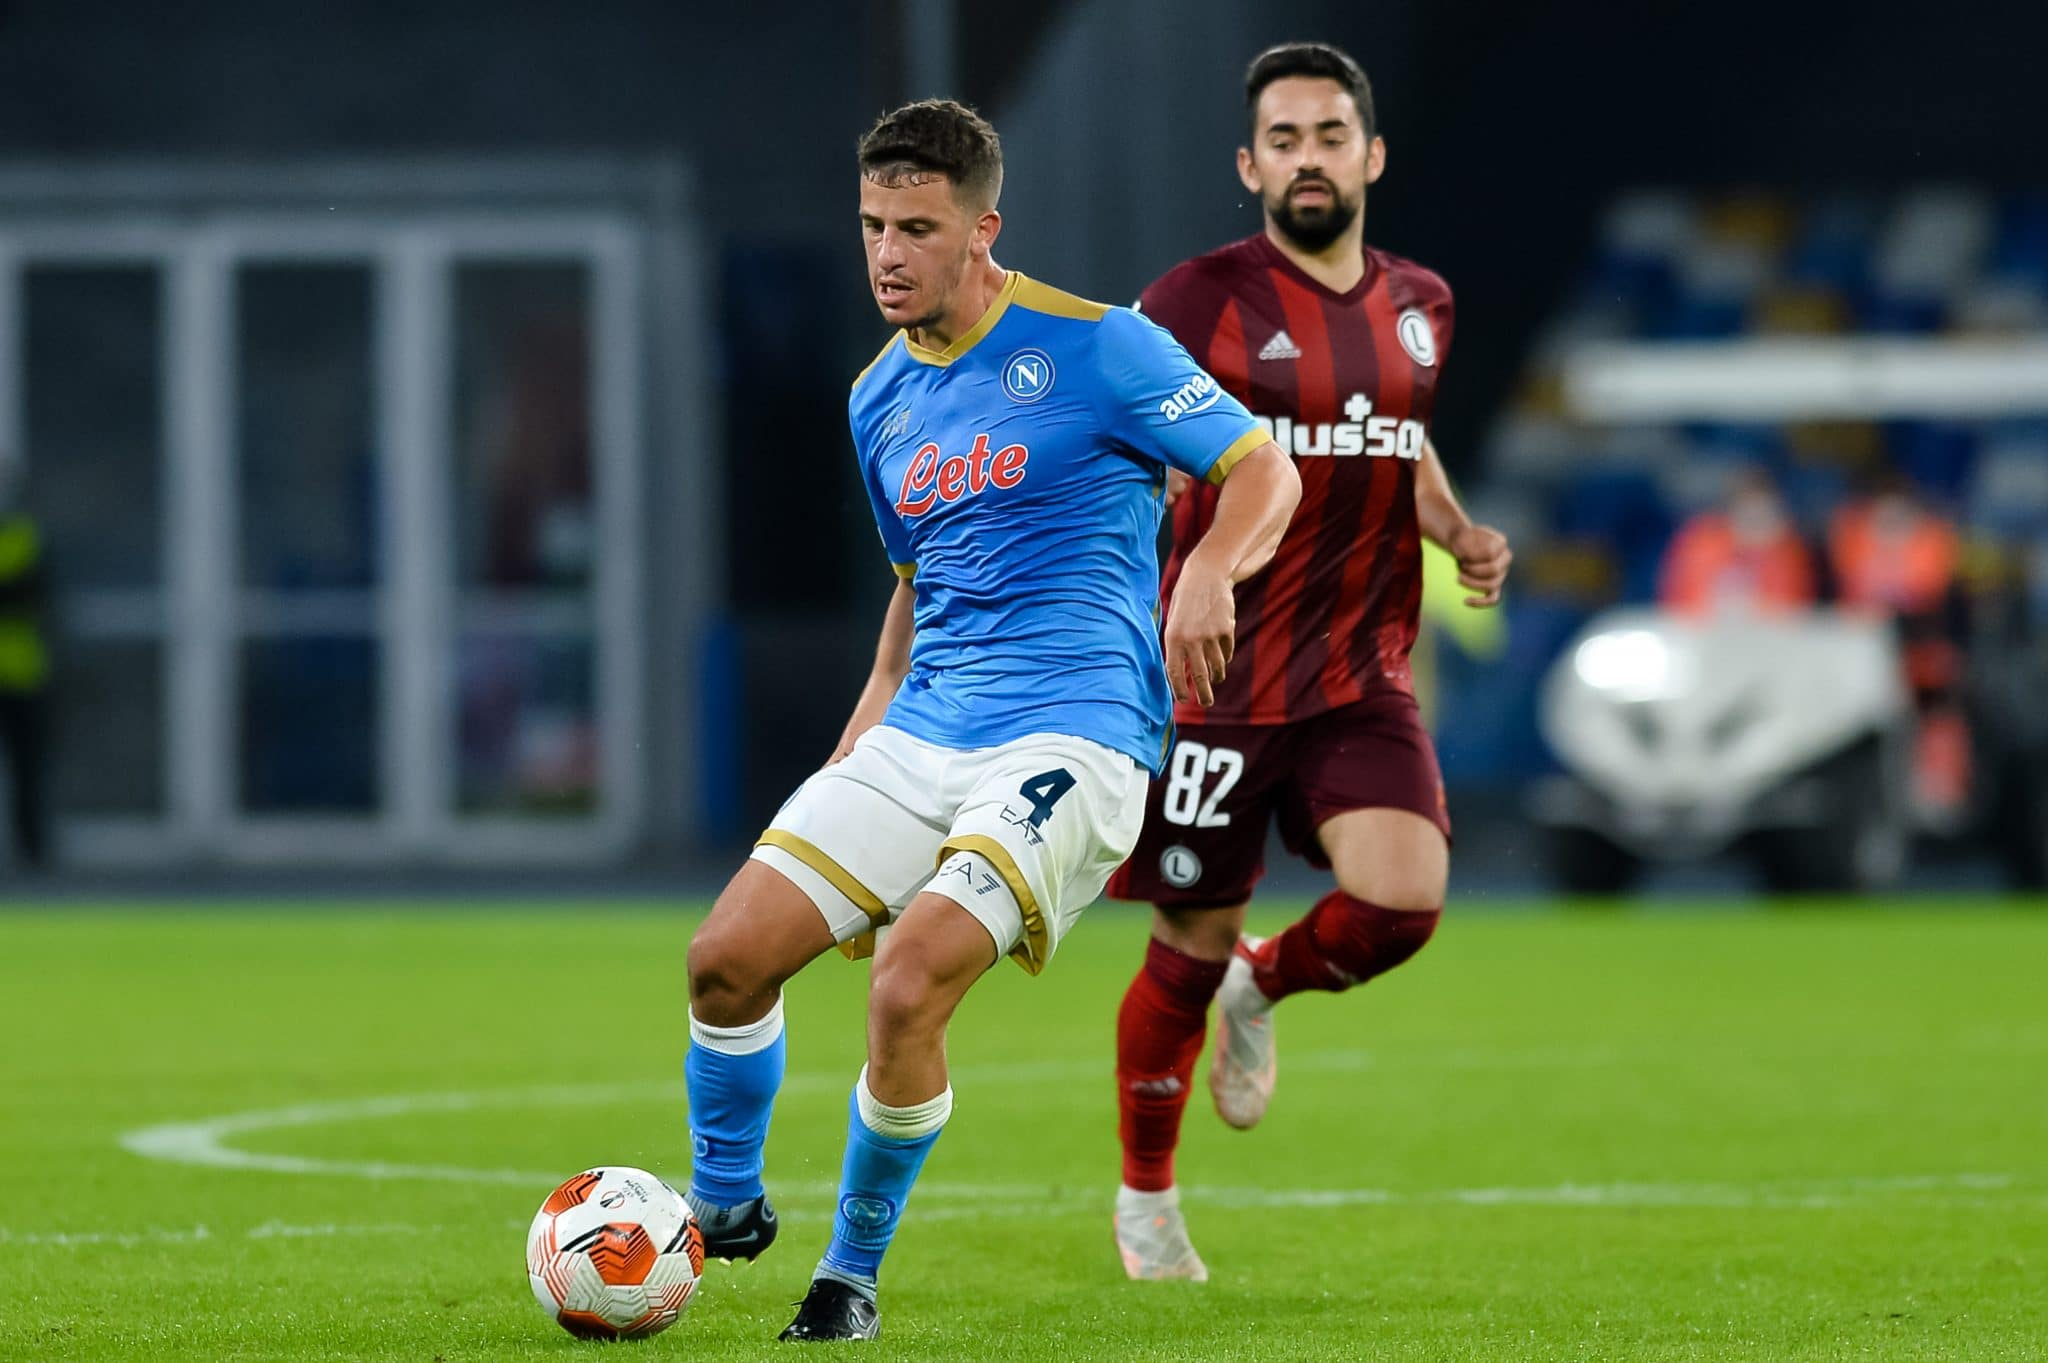 NAPLES, ITALY - OCTOBER 21: Diego Demme of SSC Napoli during the Group C - UEFA Europa League match between SSC Napoli and Legia Warszawa at Stadio Diego Armando Maradona on October 21, 2021 in Naples, Italy (Photo by Ciro Santangelo/BSR Agency/Getty Images)